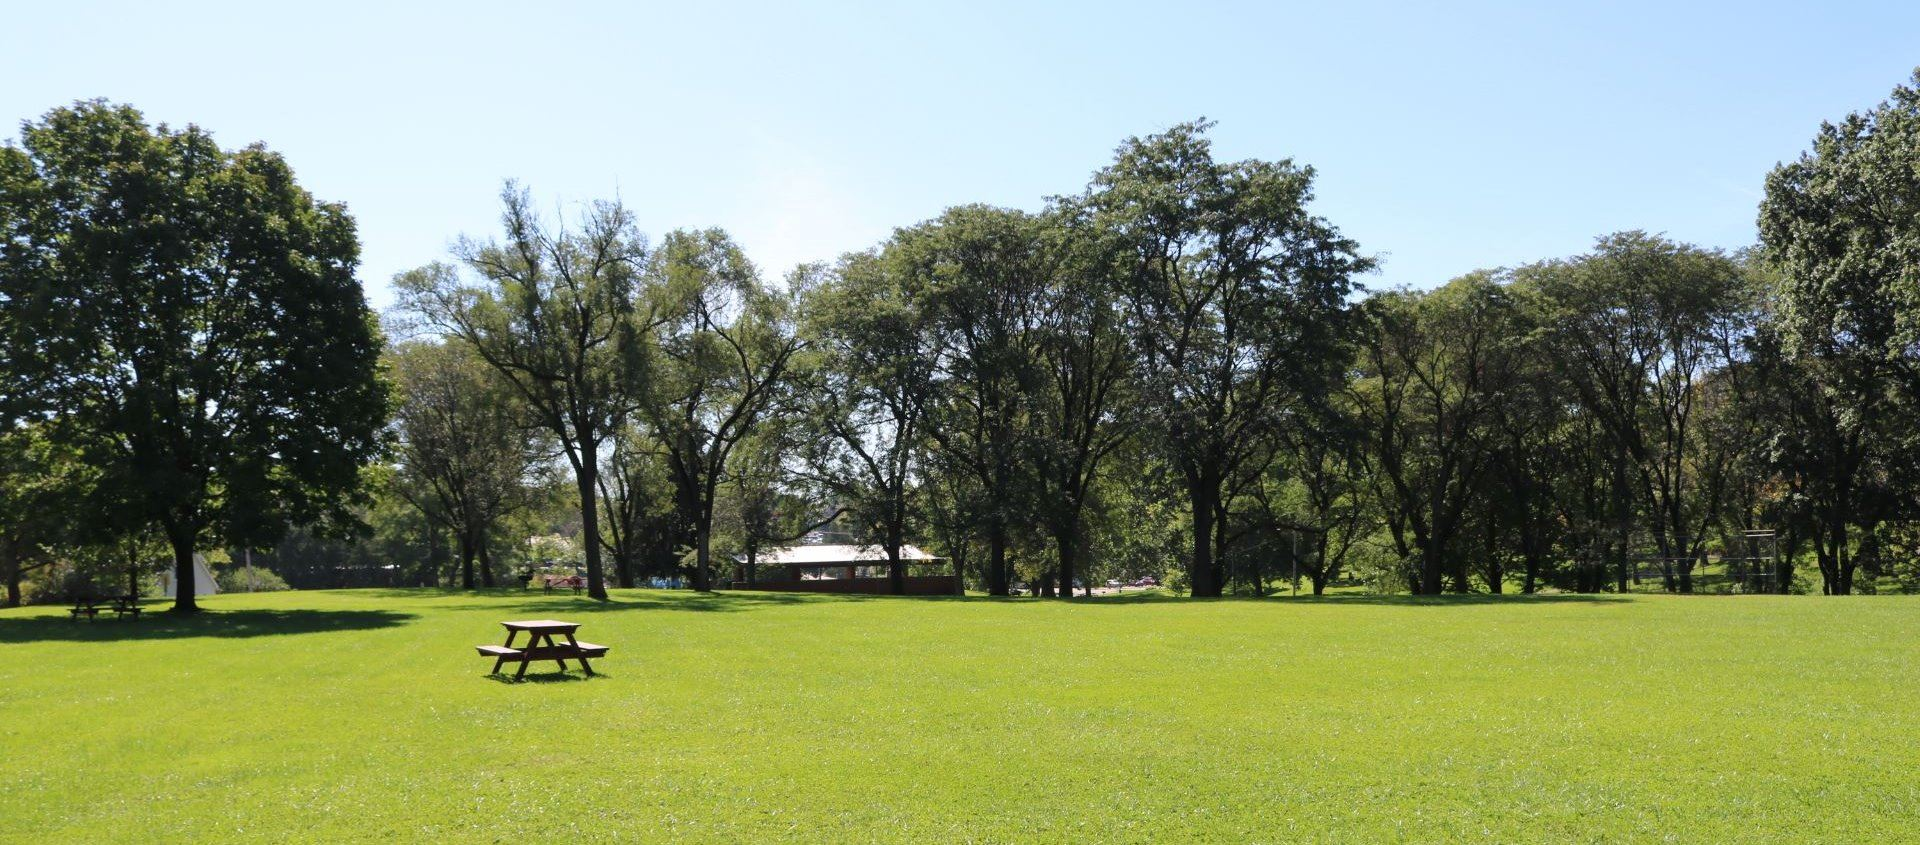 Flora Park is a 35 acres park with plenty of multipurpose green space.